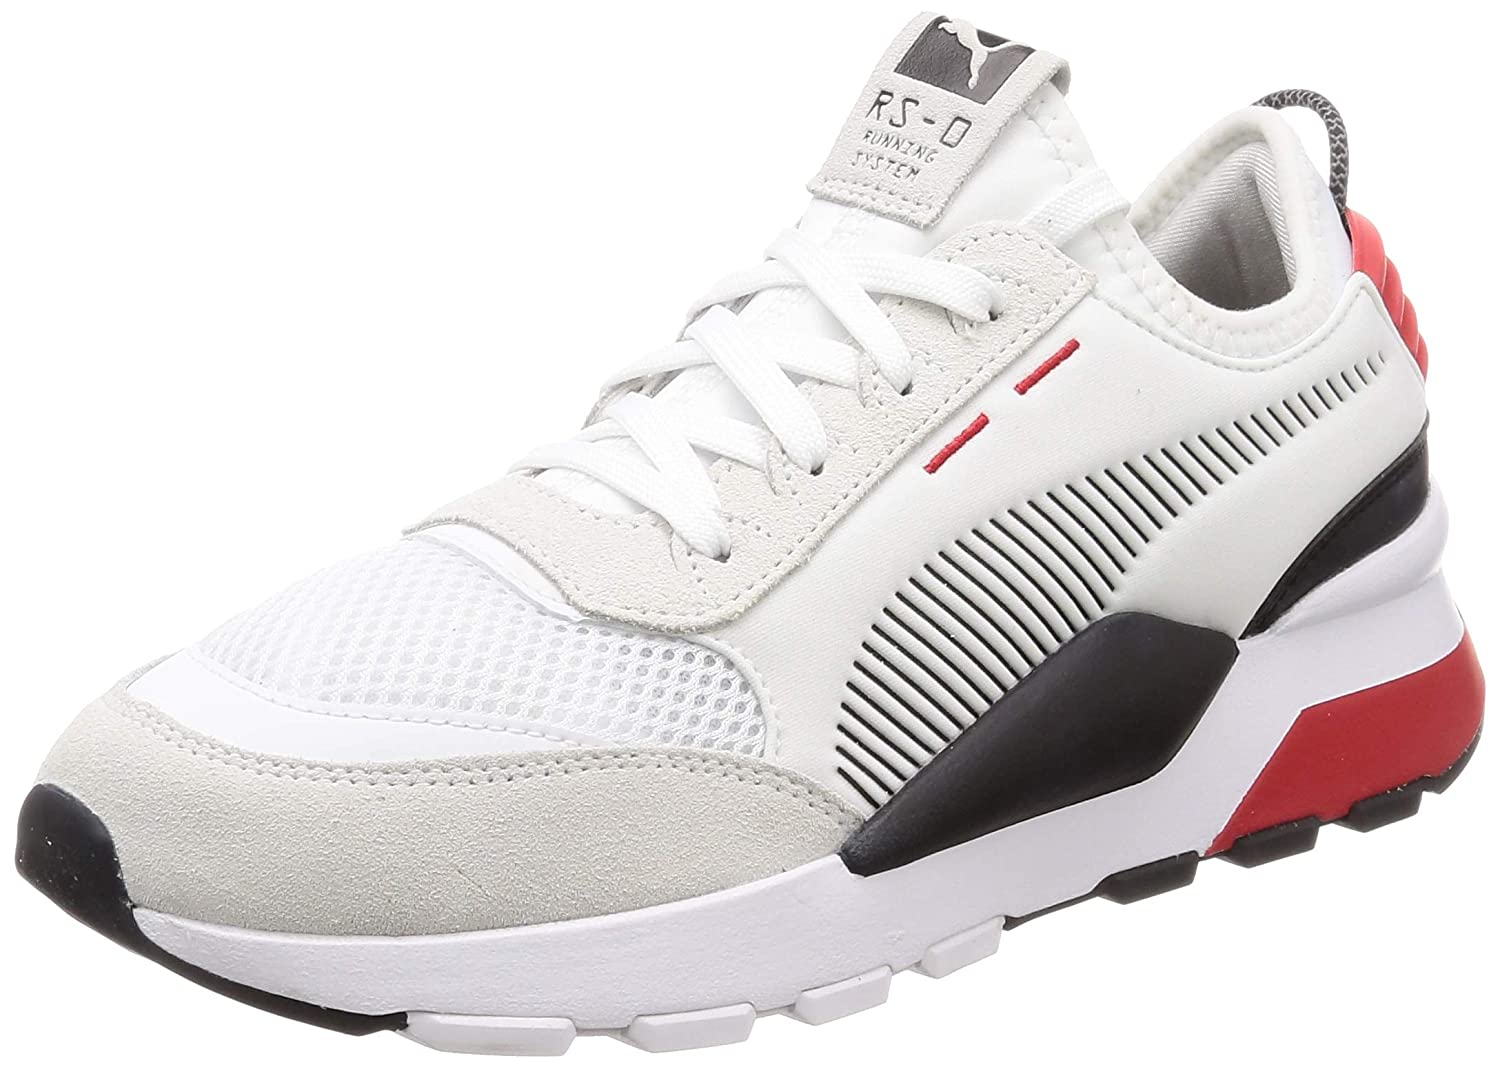 TALLA 42 EU. Puma RS-0 Winter Inj Toys, Zapatillas Unisex Adulto